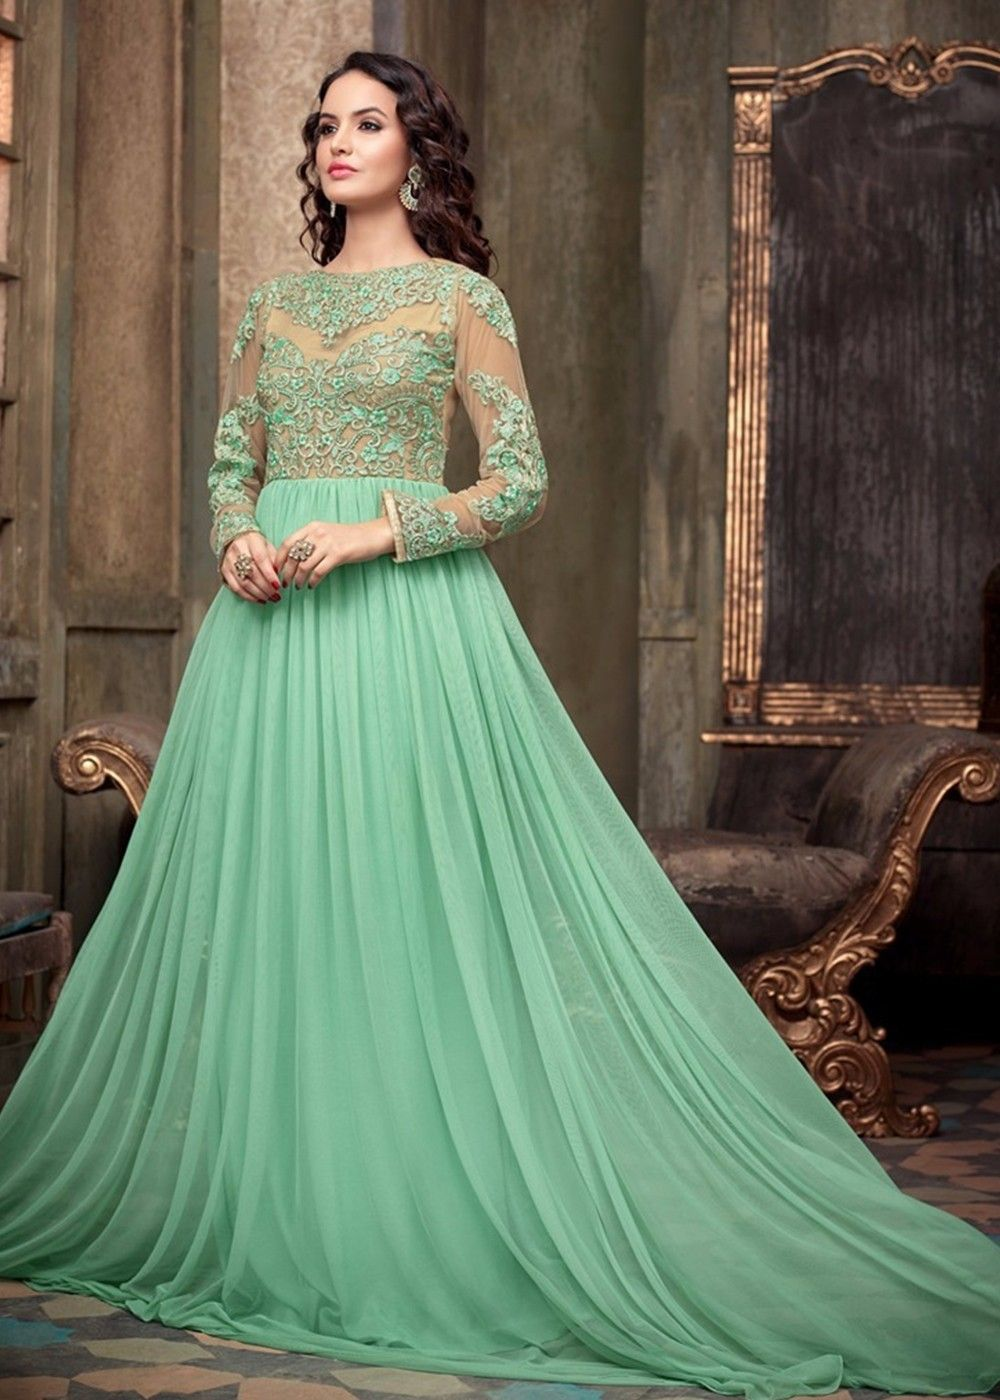 Maisha Crush Stunning New Party Wear Green Net Designer Dress ...